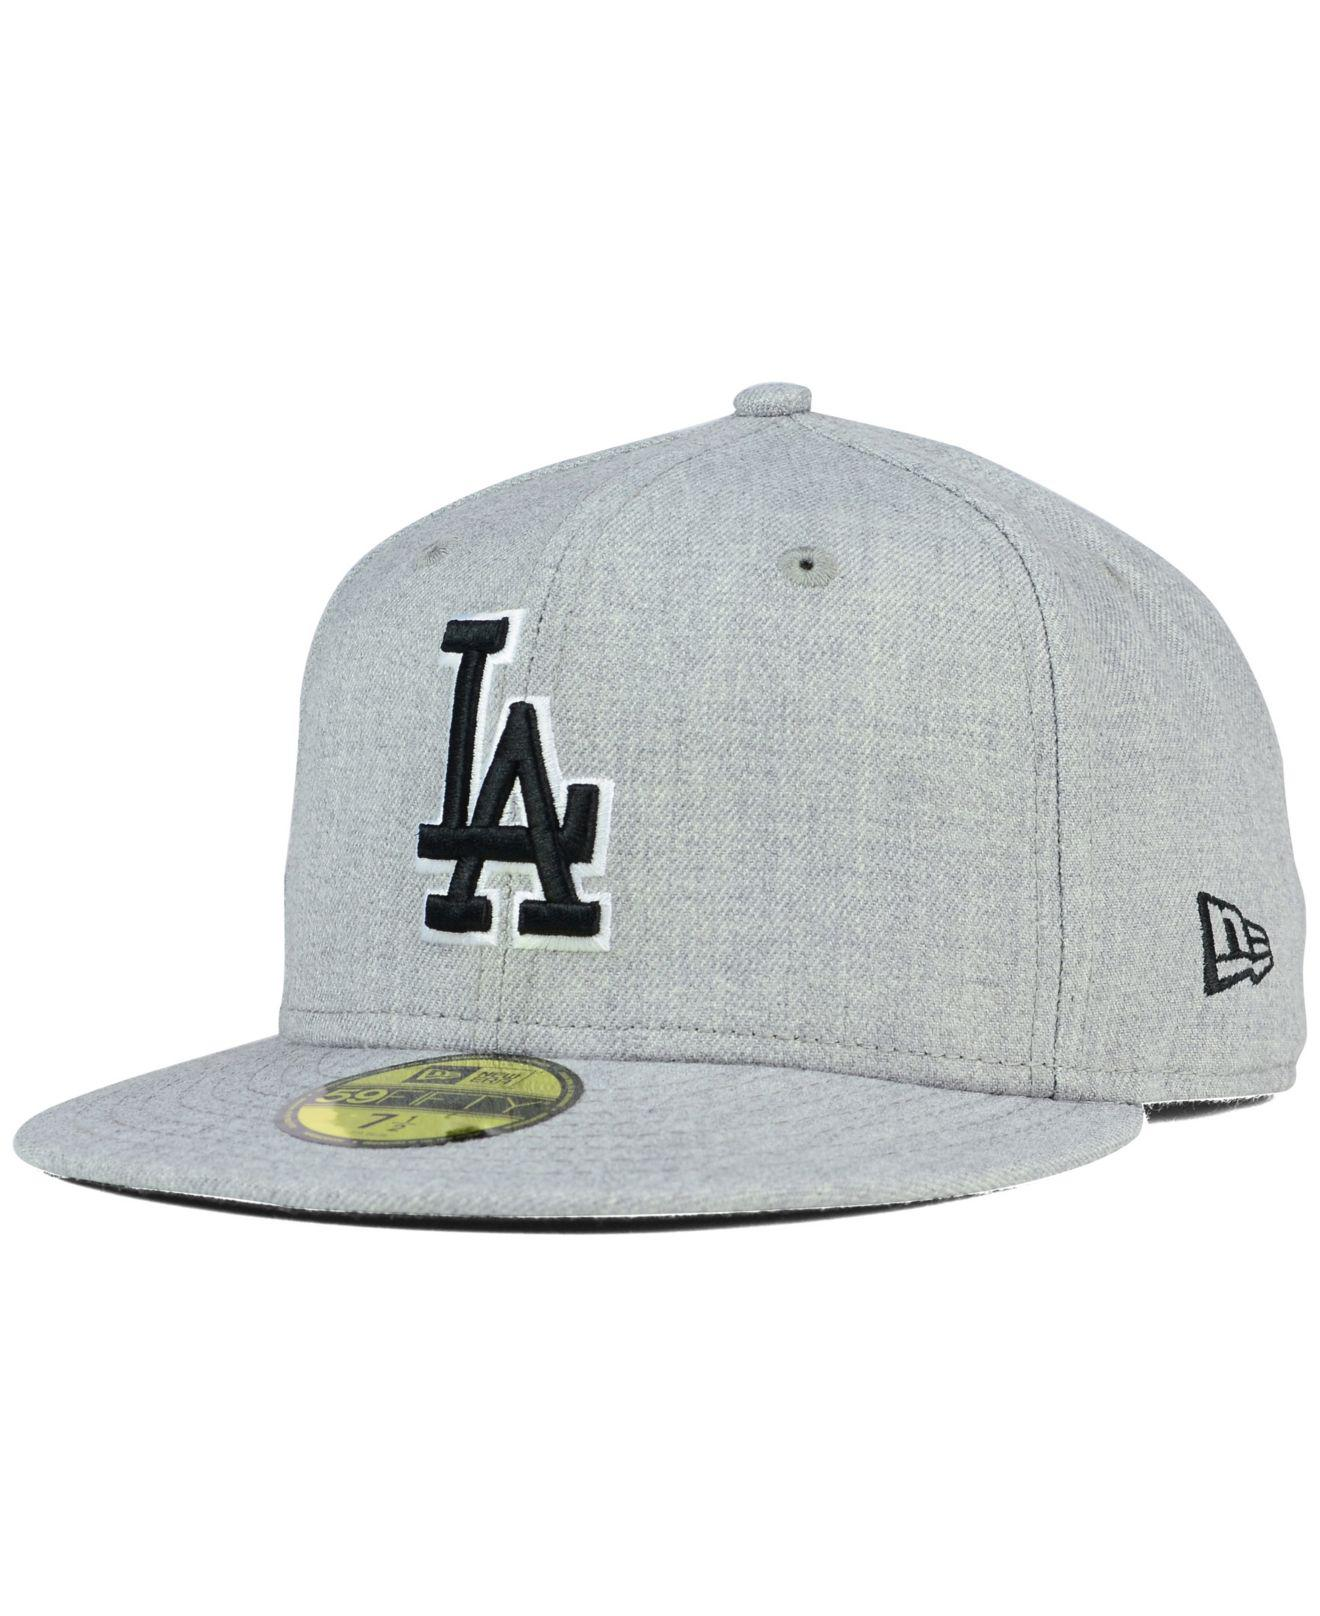 promo code 2c510 63e3a ... Los Angeles Dodgers Heather Black White 59fifty Cap for Men - Lyst. View  fullscreen